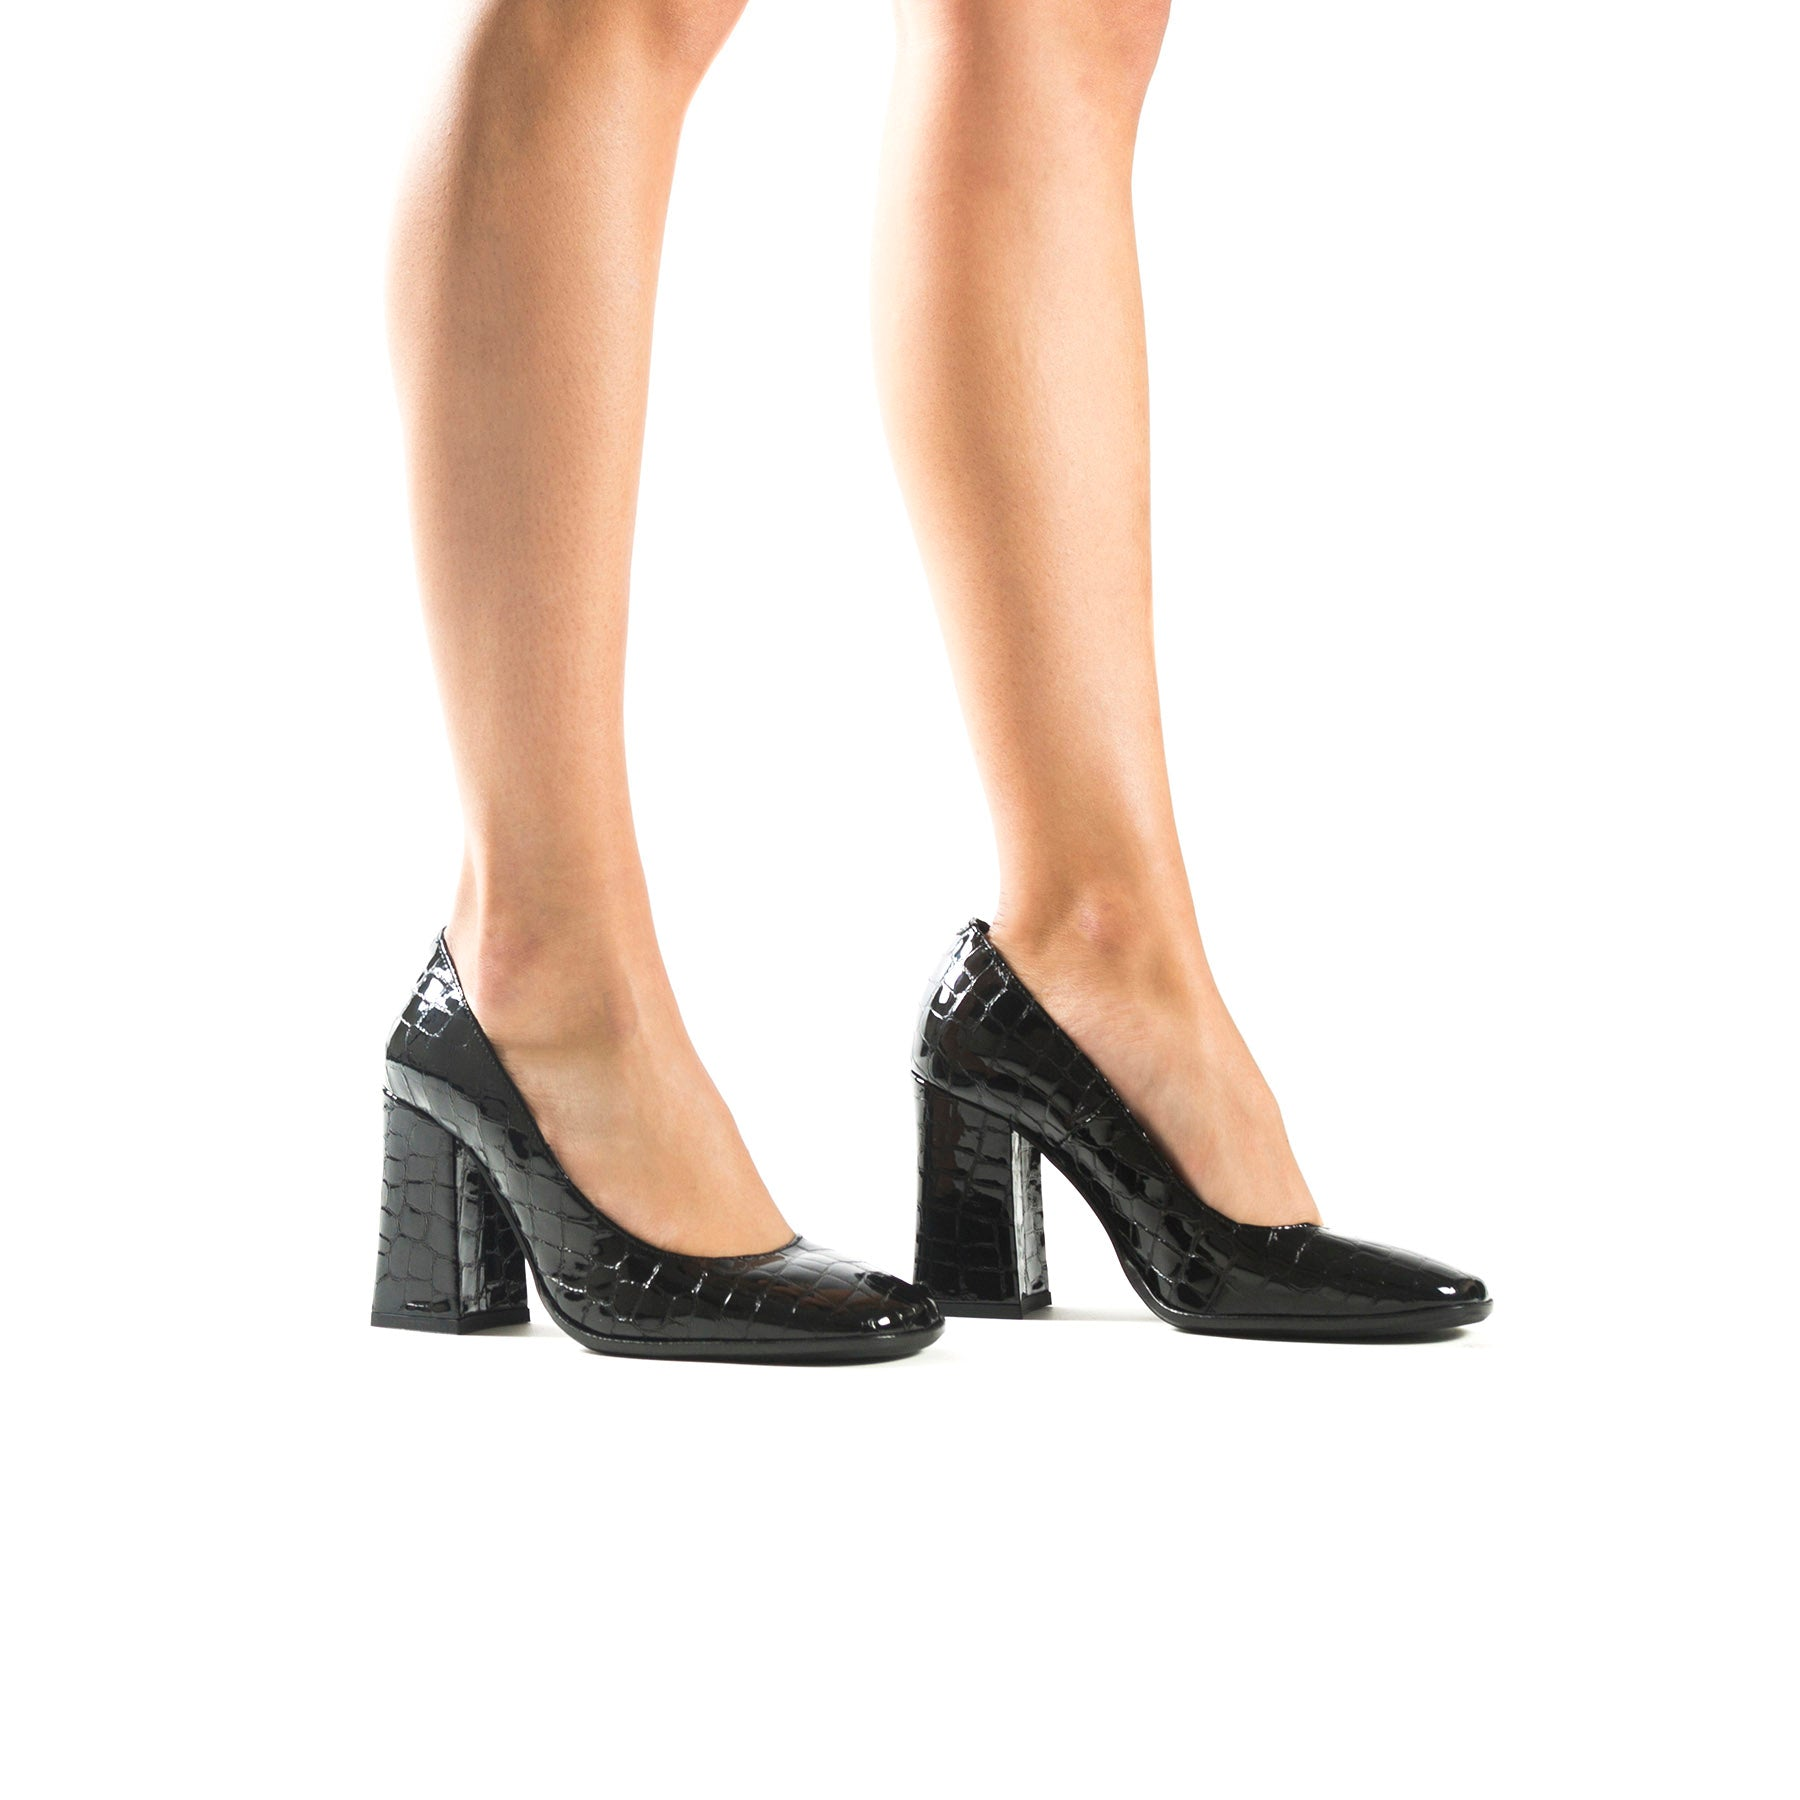 Lady Black Croco Pumps